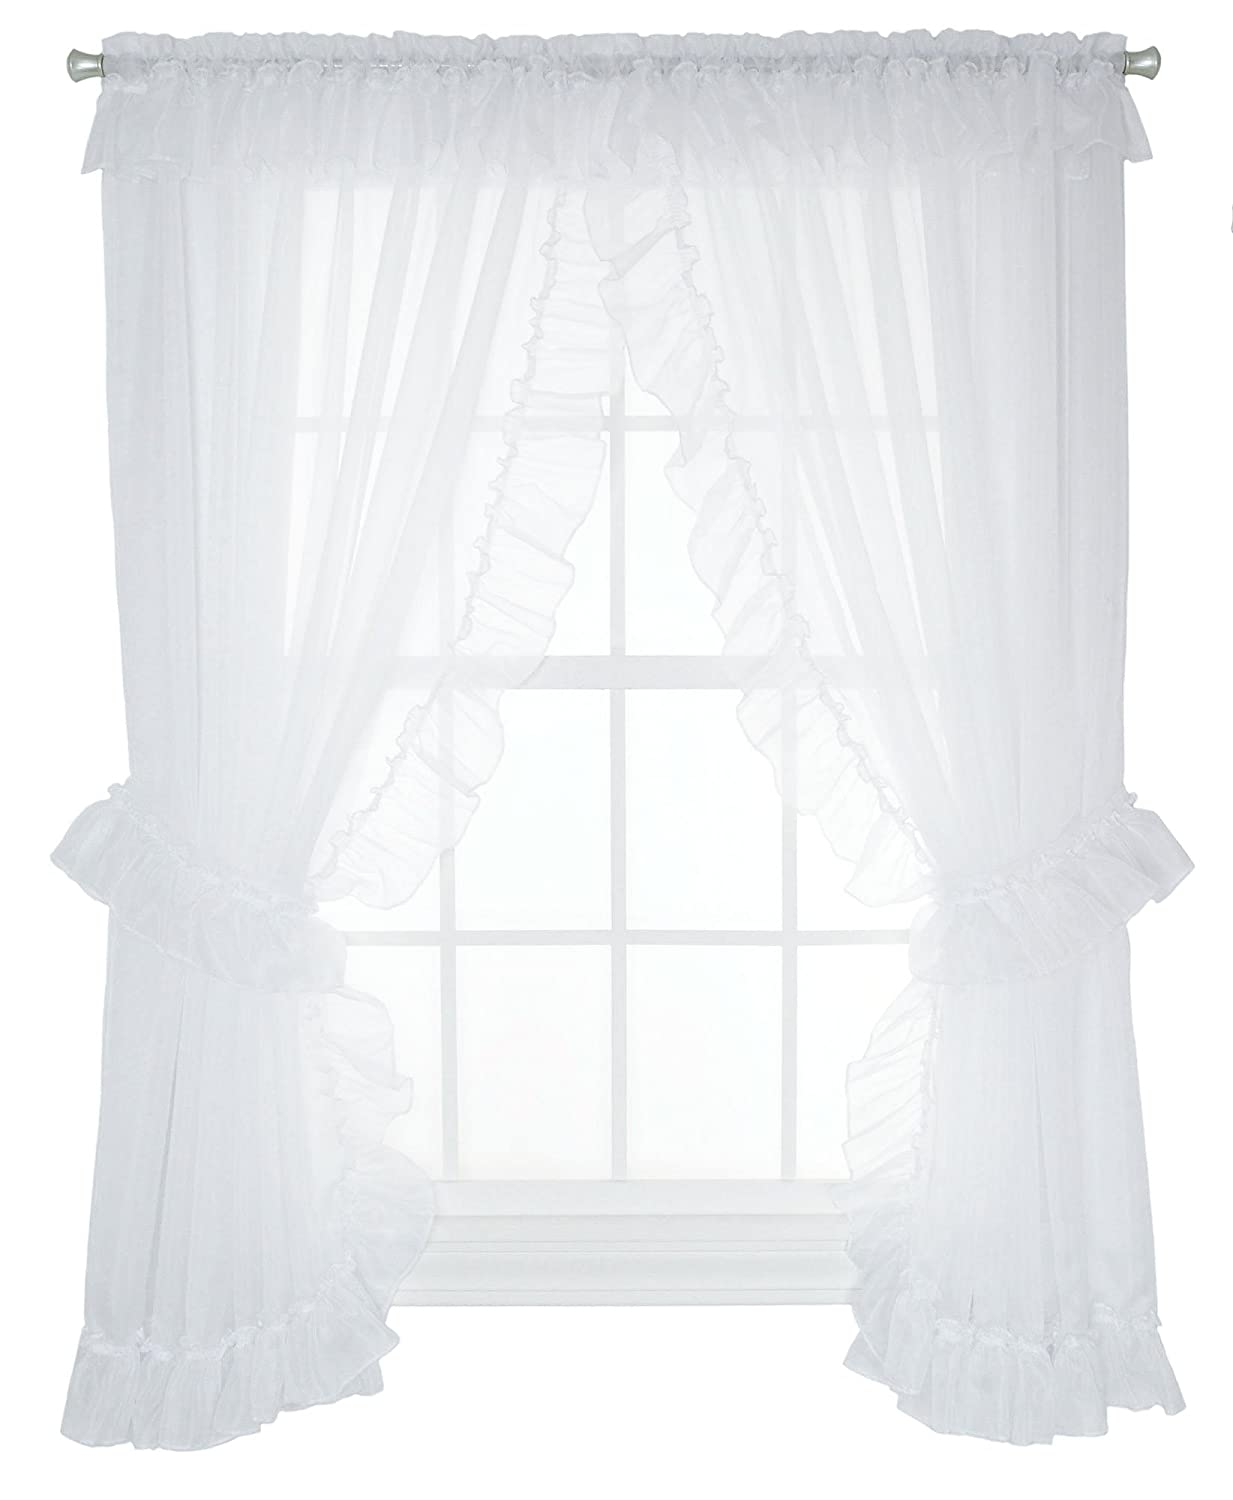 on treatments best pinterest designs new images inch window beautiful of curtains design